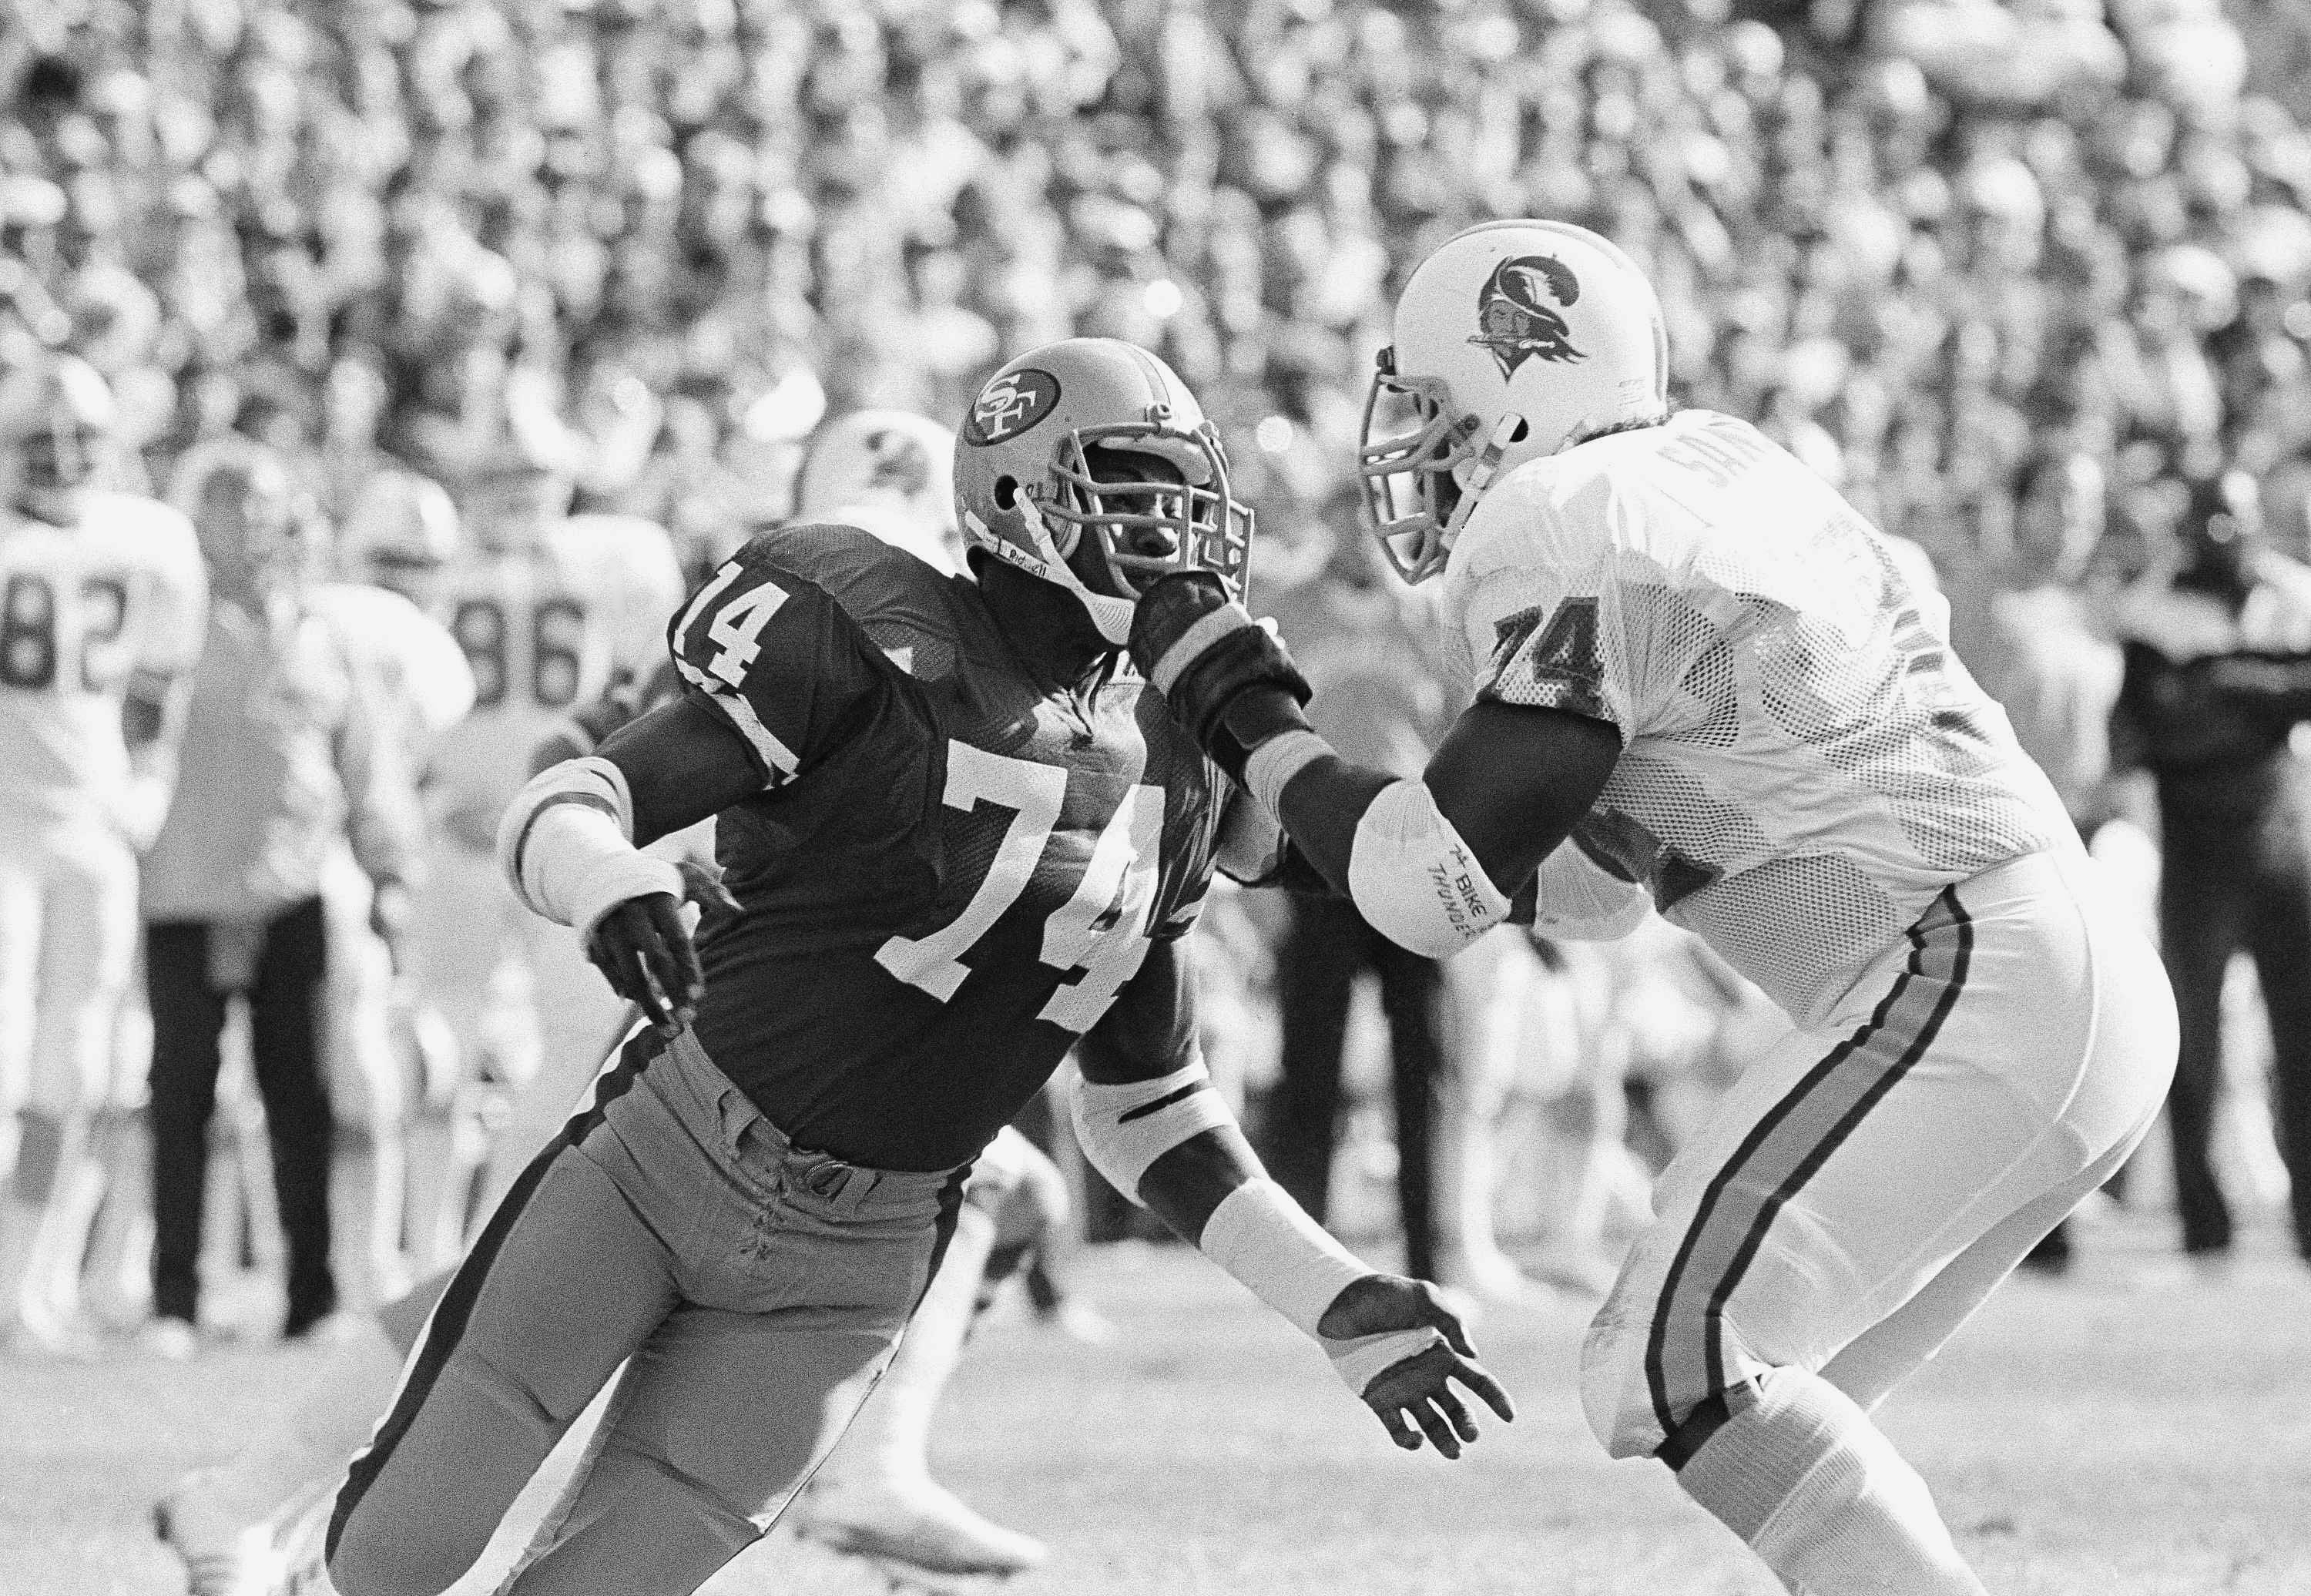 Pro Football Hall of Fame member, two-time Super Bowl champion Fred Dean dies at 68